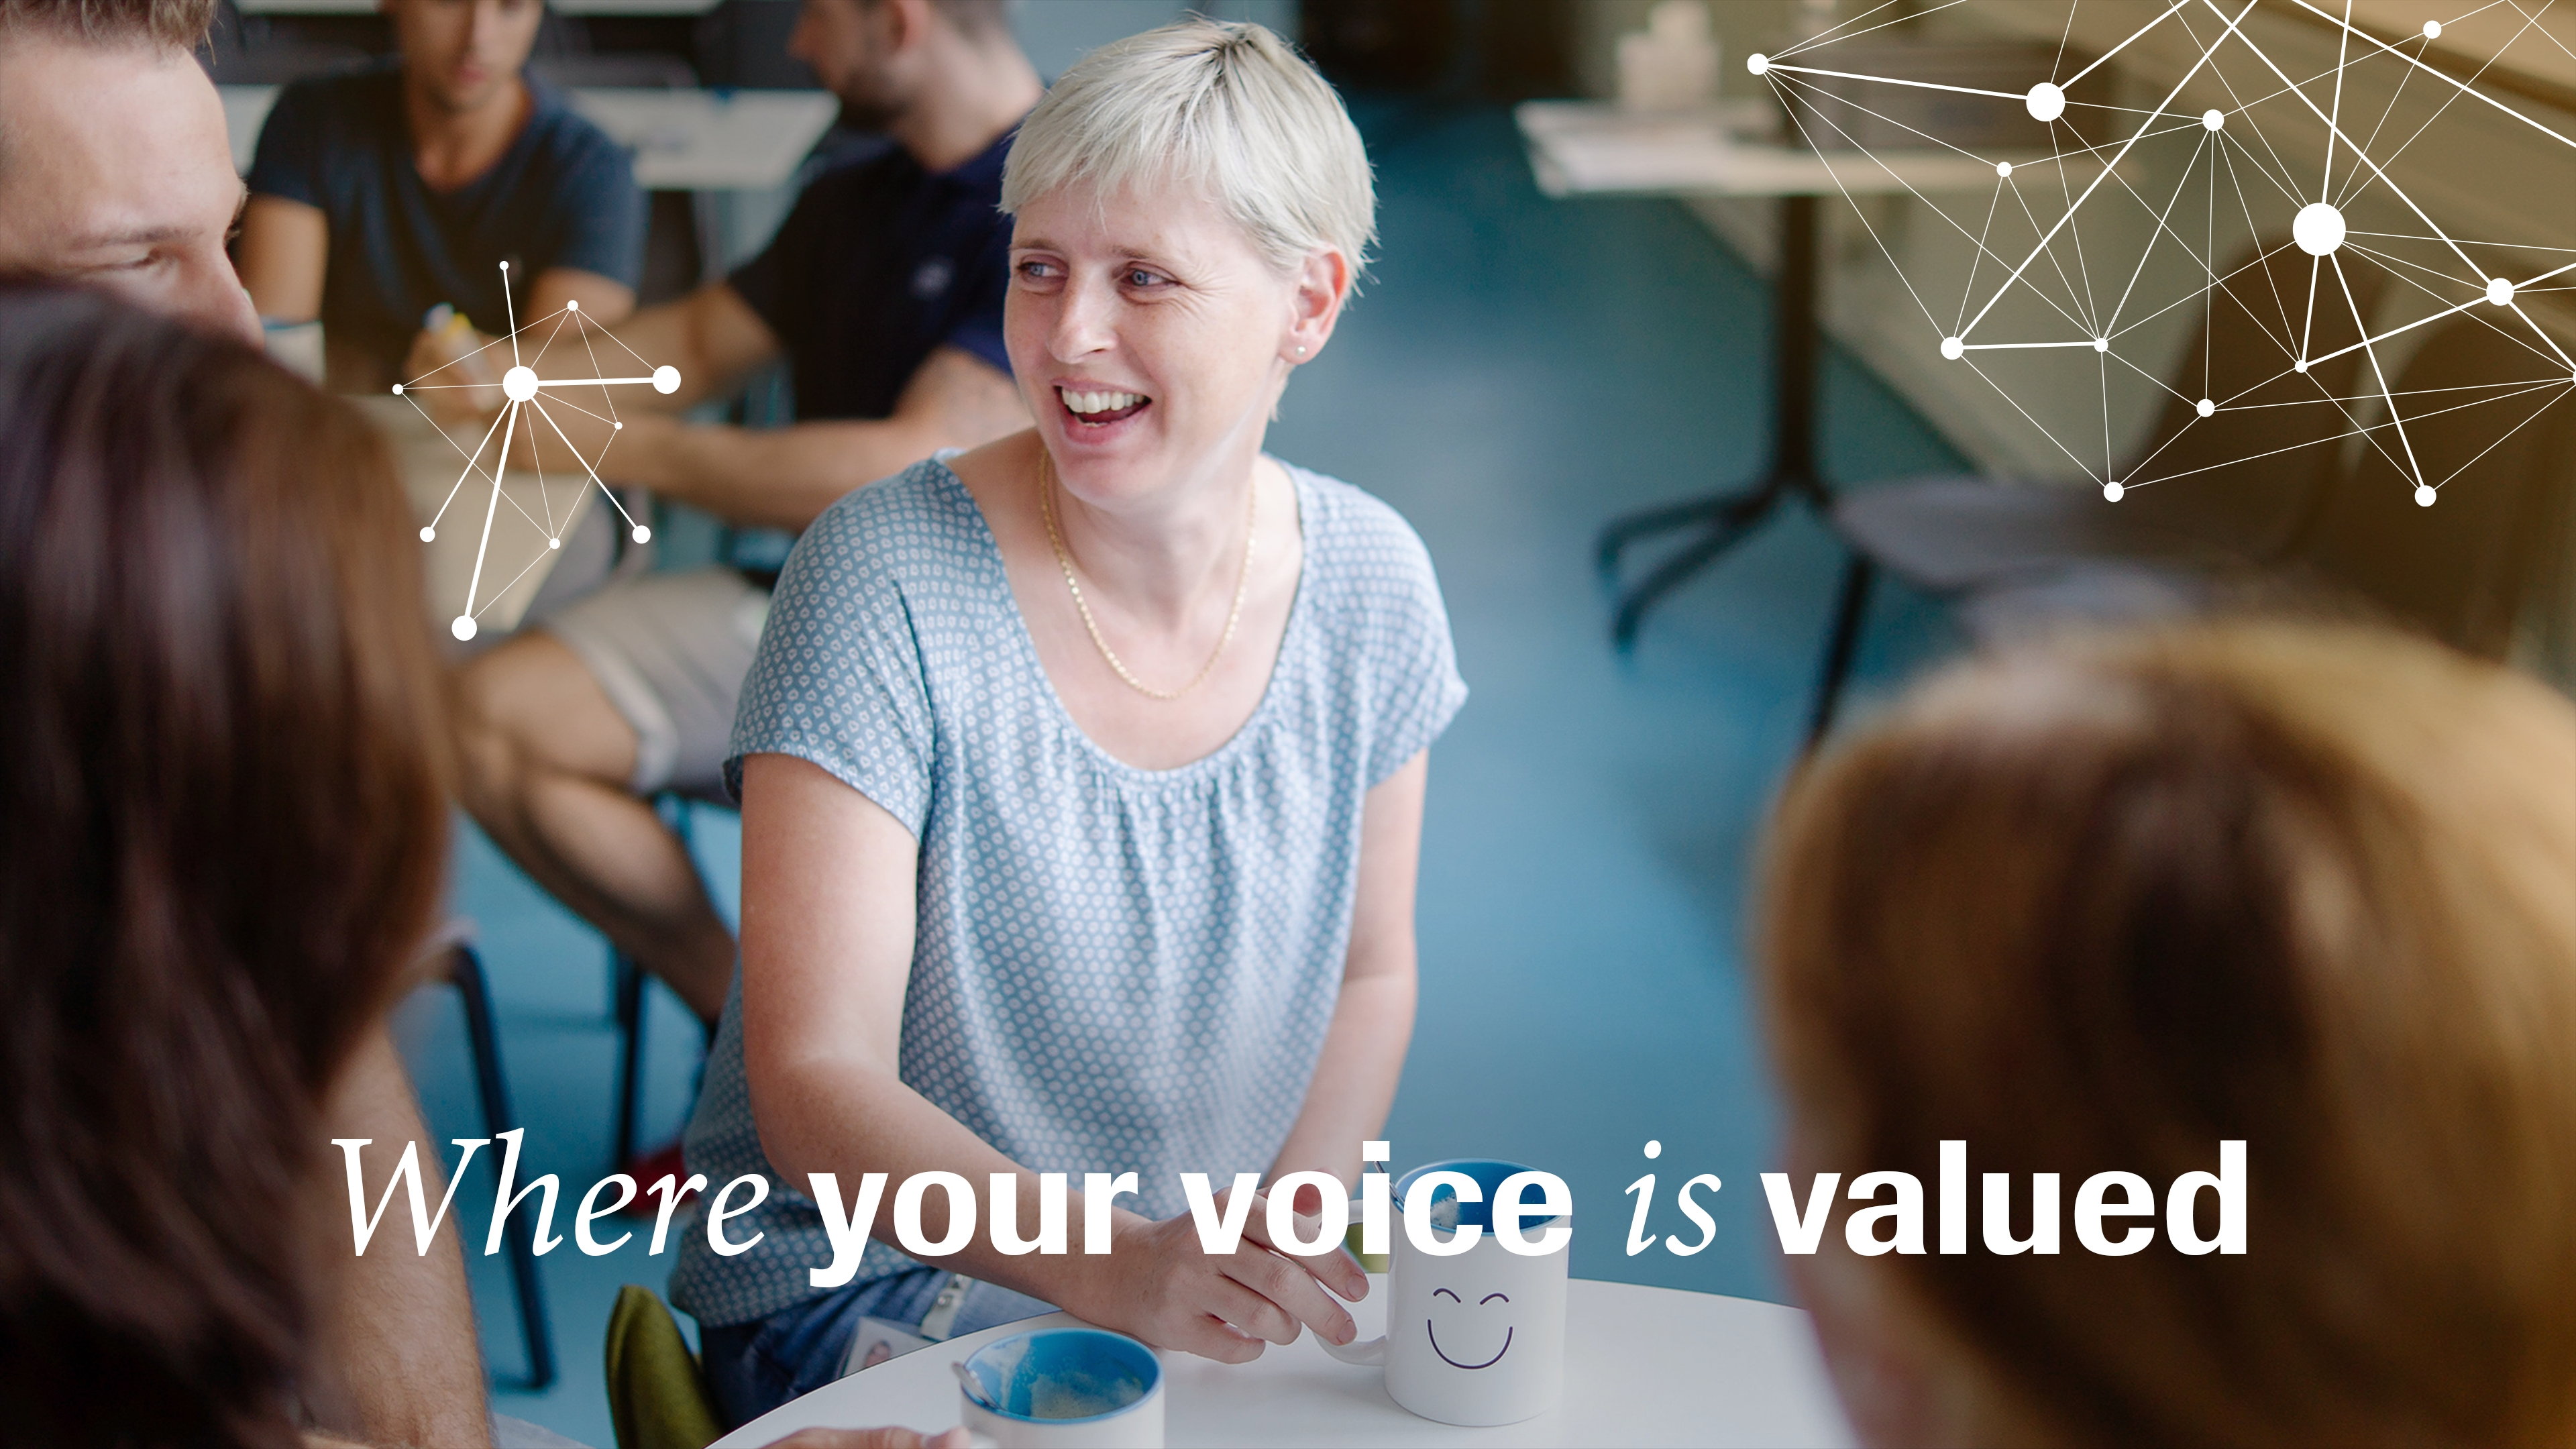 Where your voice is valued